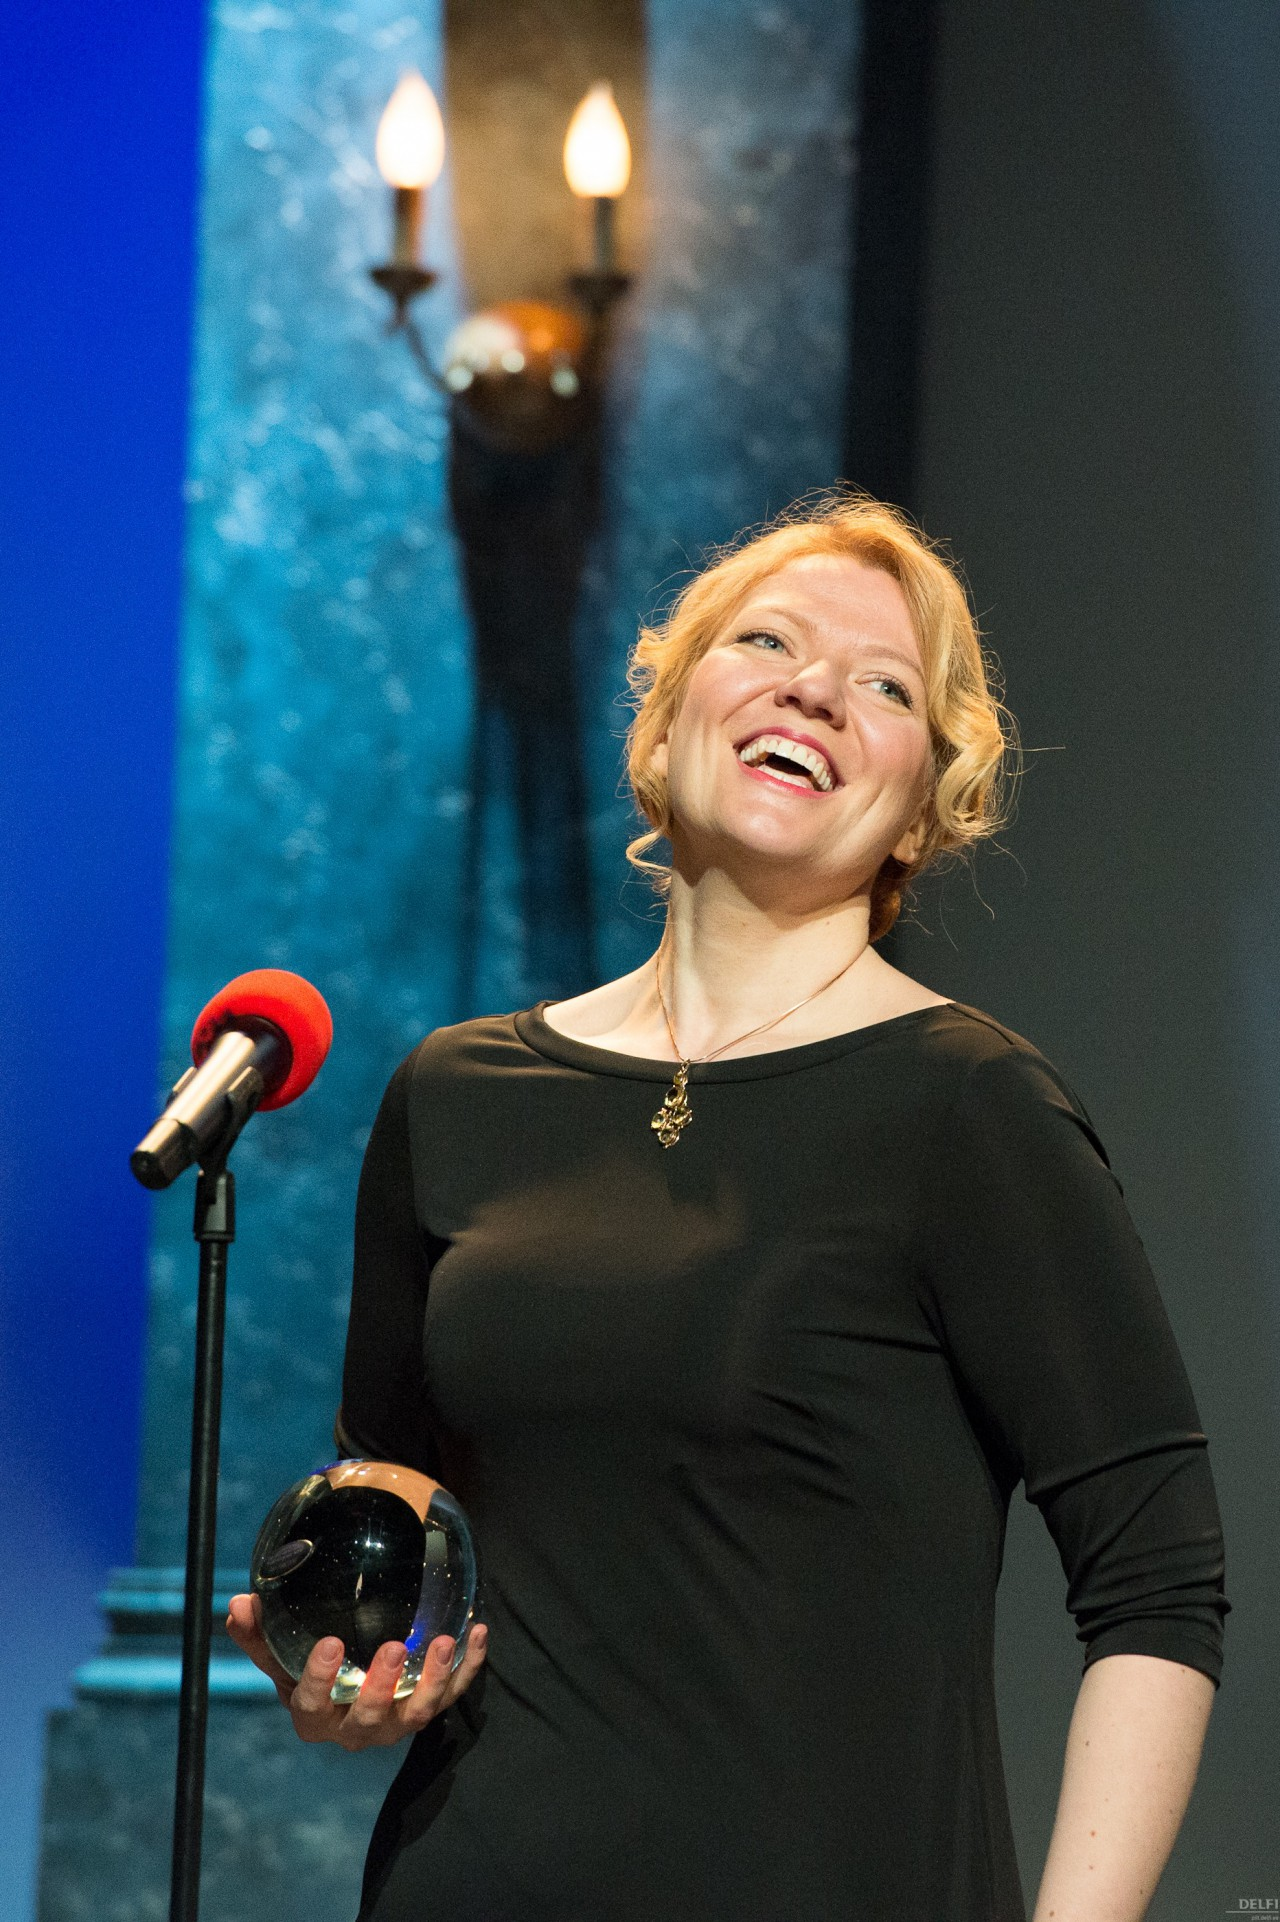 Aile Asszonyi receives the Estonian Theatre Award 2012